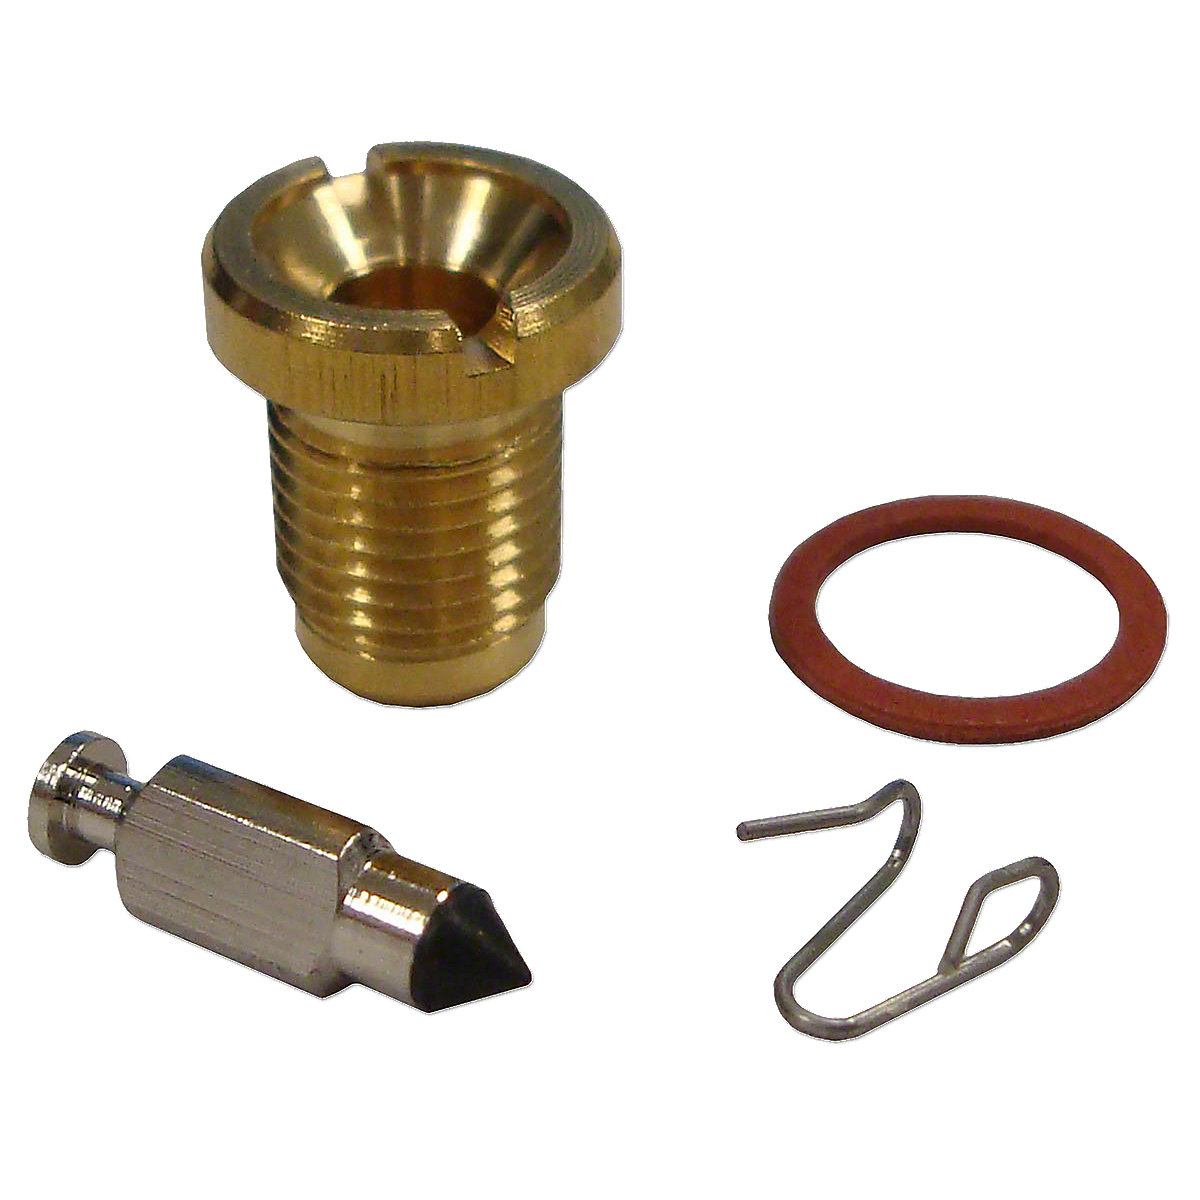 Marvel Schebler Viton Needle Float Valve For Massey Ferguson: 150, 35, 50, 135, F40, TE20, TO20, TO30, TO35, Massey Harris: Colt 21, Mustang 23, Pacer 16, Pony, 101 Jr, 102 Jr, 20, 22, 22K, 30, 50, 81, 82.